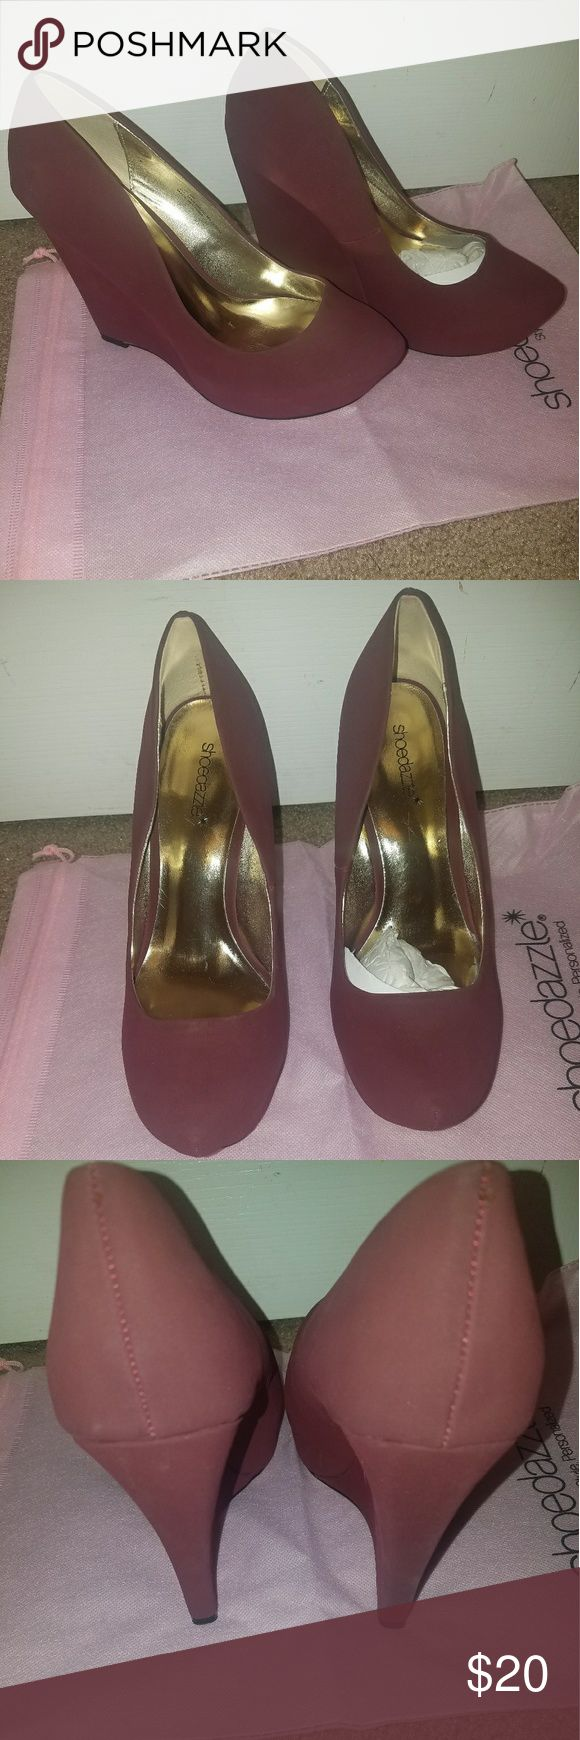 Shoe Dazzle Burgundy Wedge Heels Worn once out to dinner. Heel 5 inches. Platform 1 inch. They have been stored in their box. Dustbag included. Shoe Dazzle Shoes Wedges